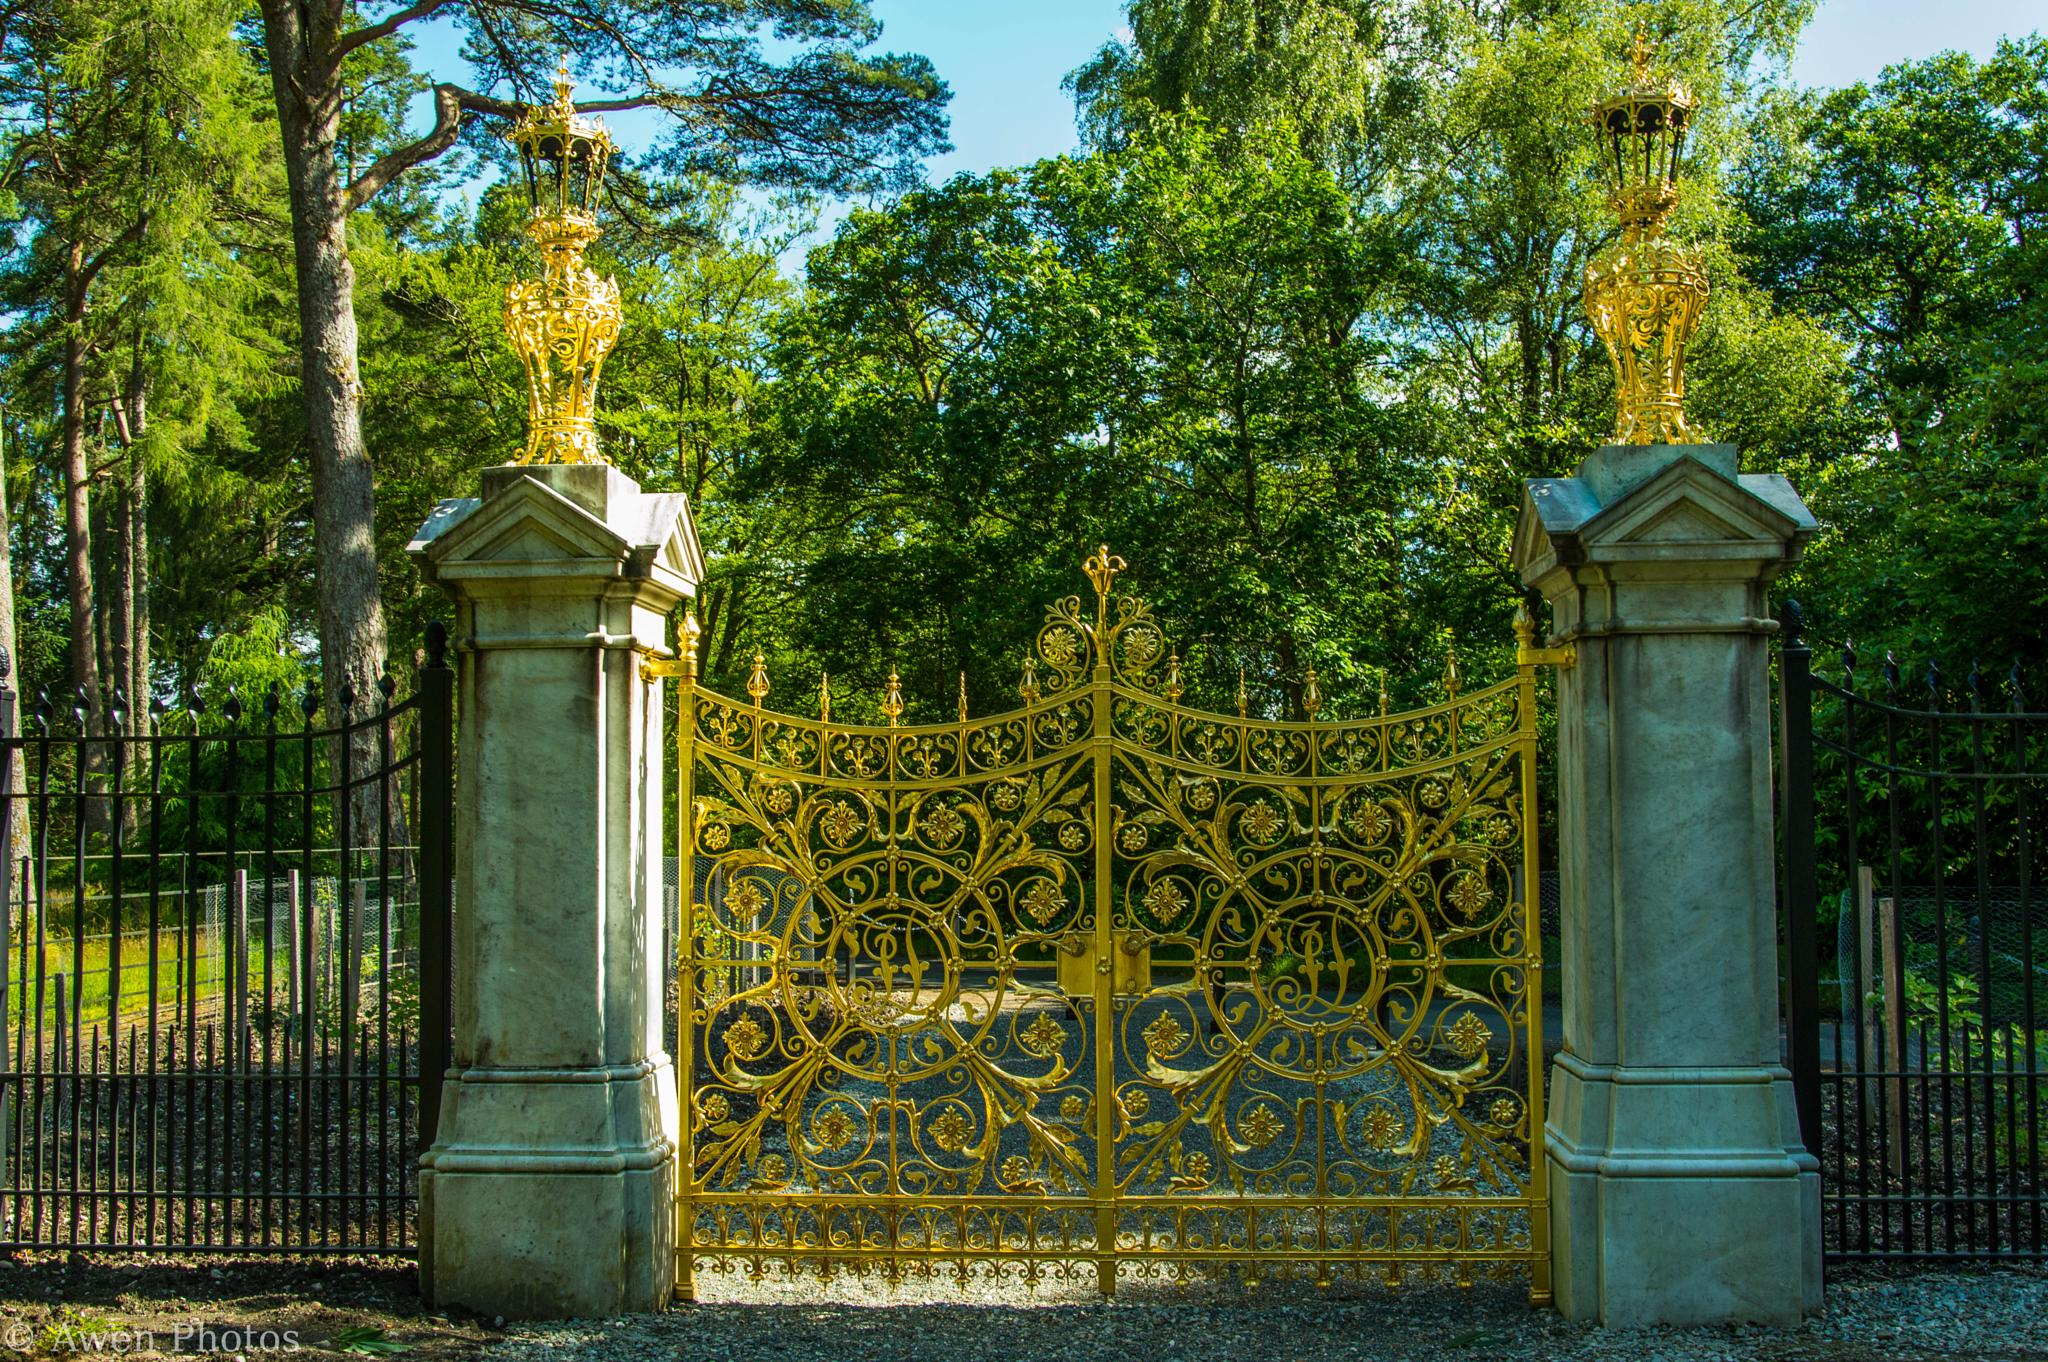 The Golden gates by Neil Pitchford